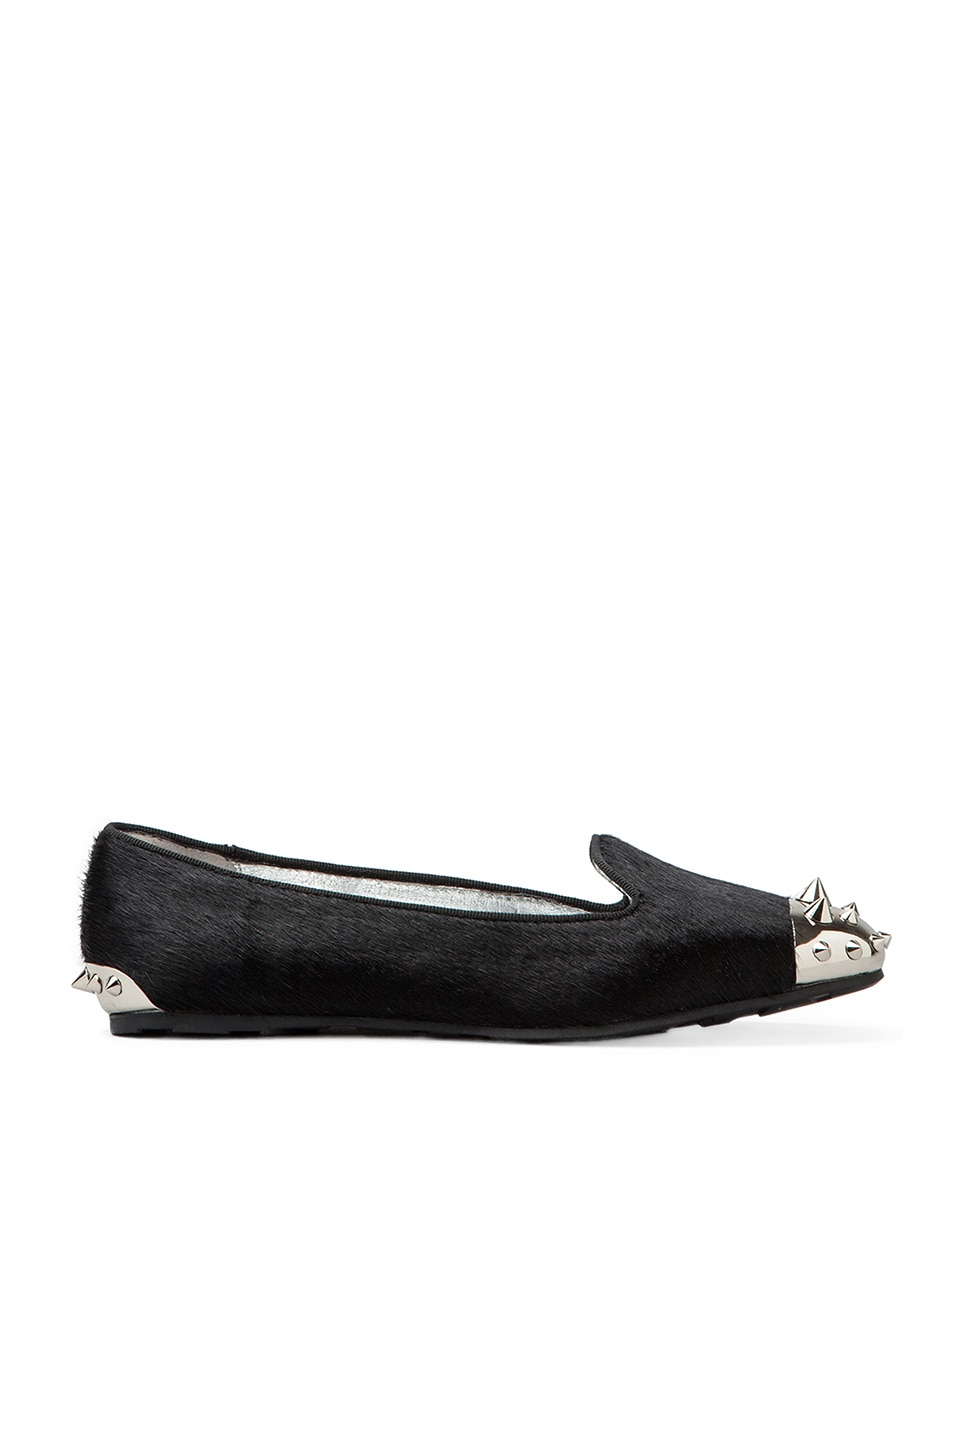 SENSO Eek I Flat with Calf Hair in Black